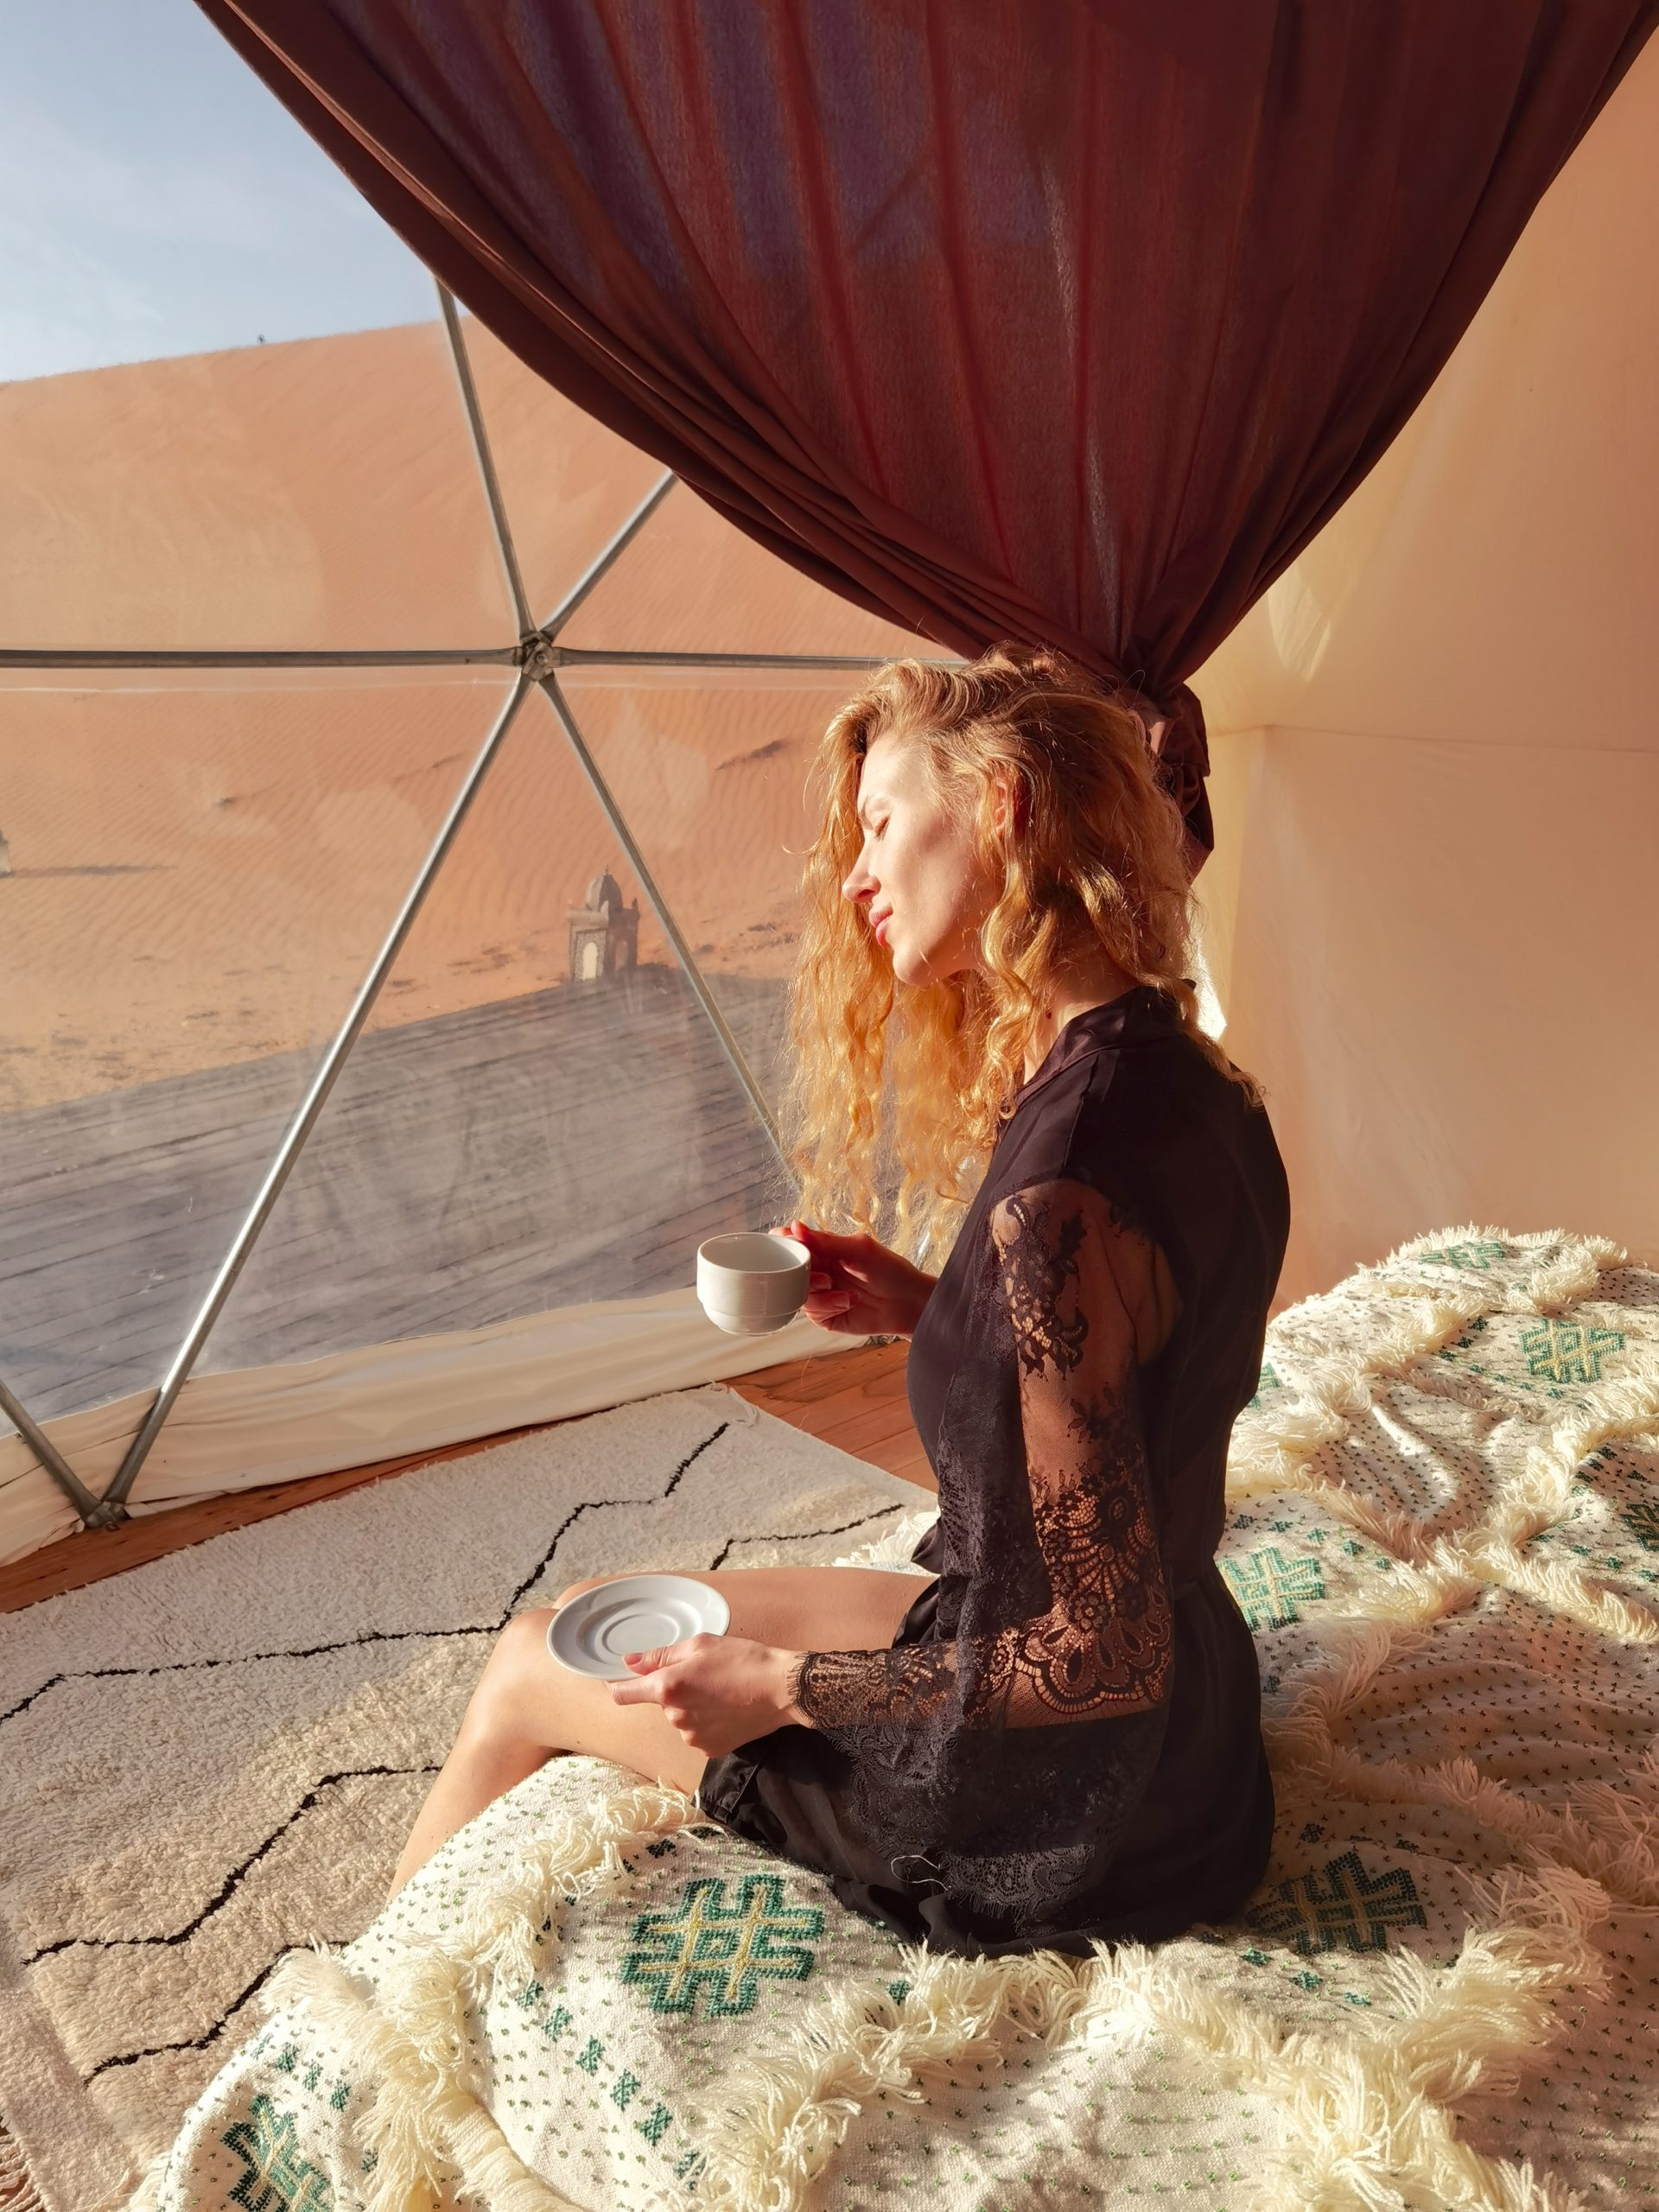 A young model enjoy her coffee in a dome tent at sunrise facing the Sahara Desert